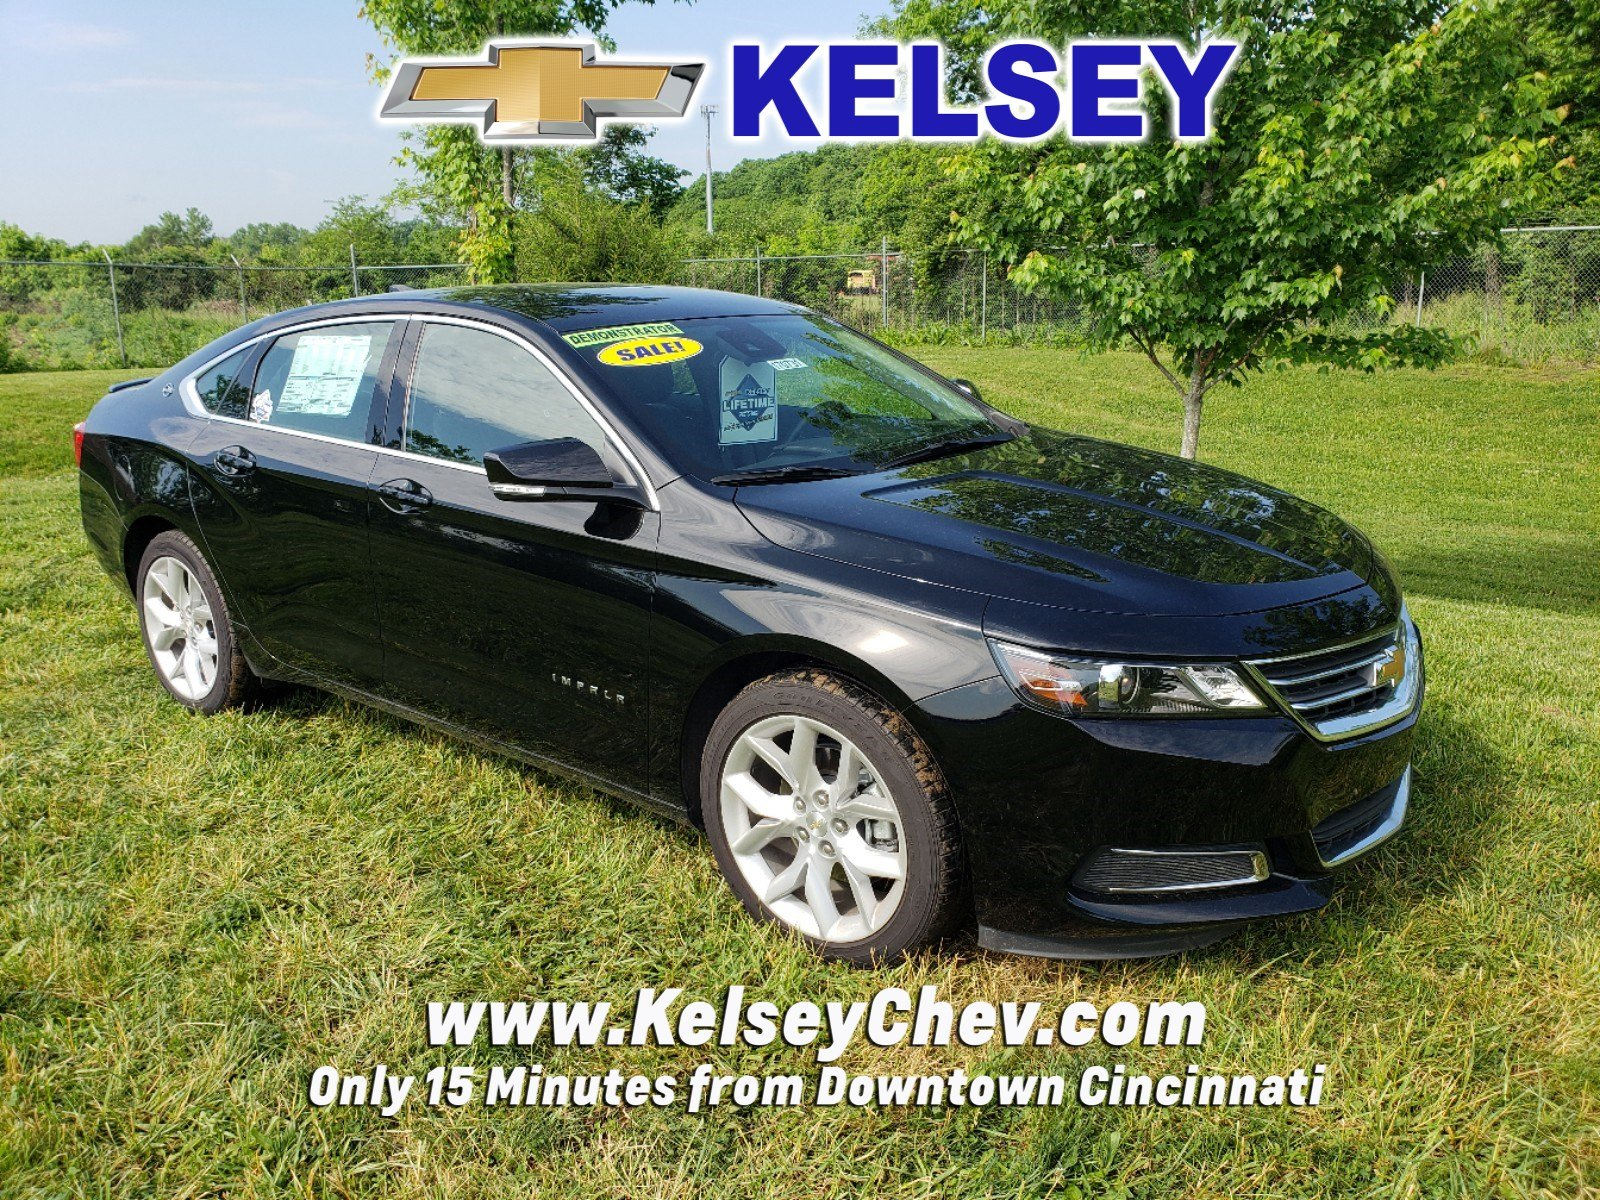 New 2017 Chevrolet Impala LT